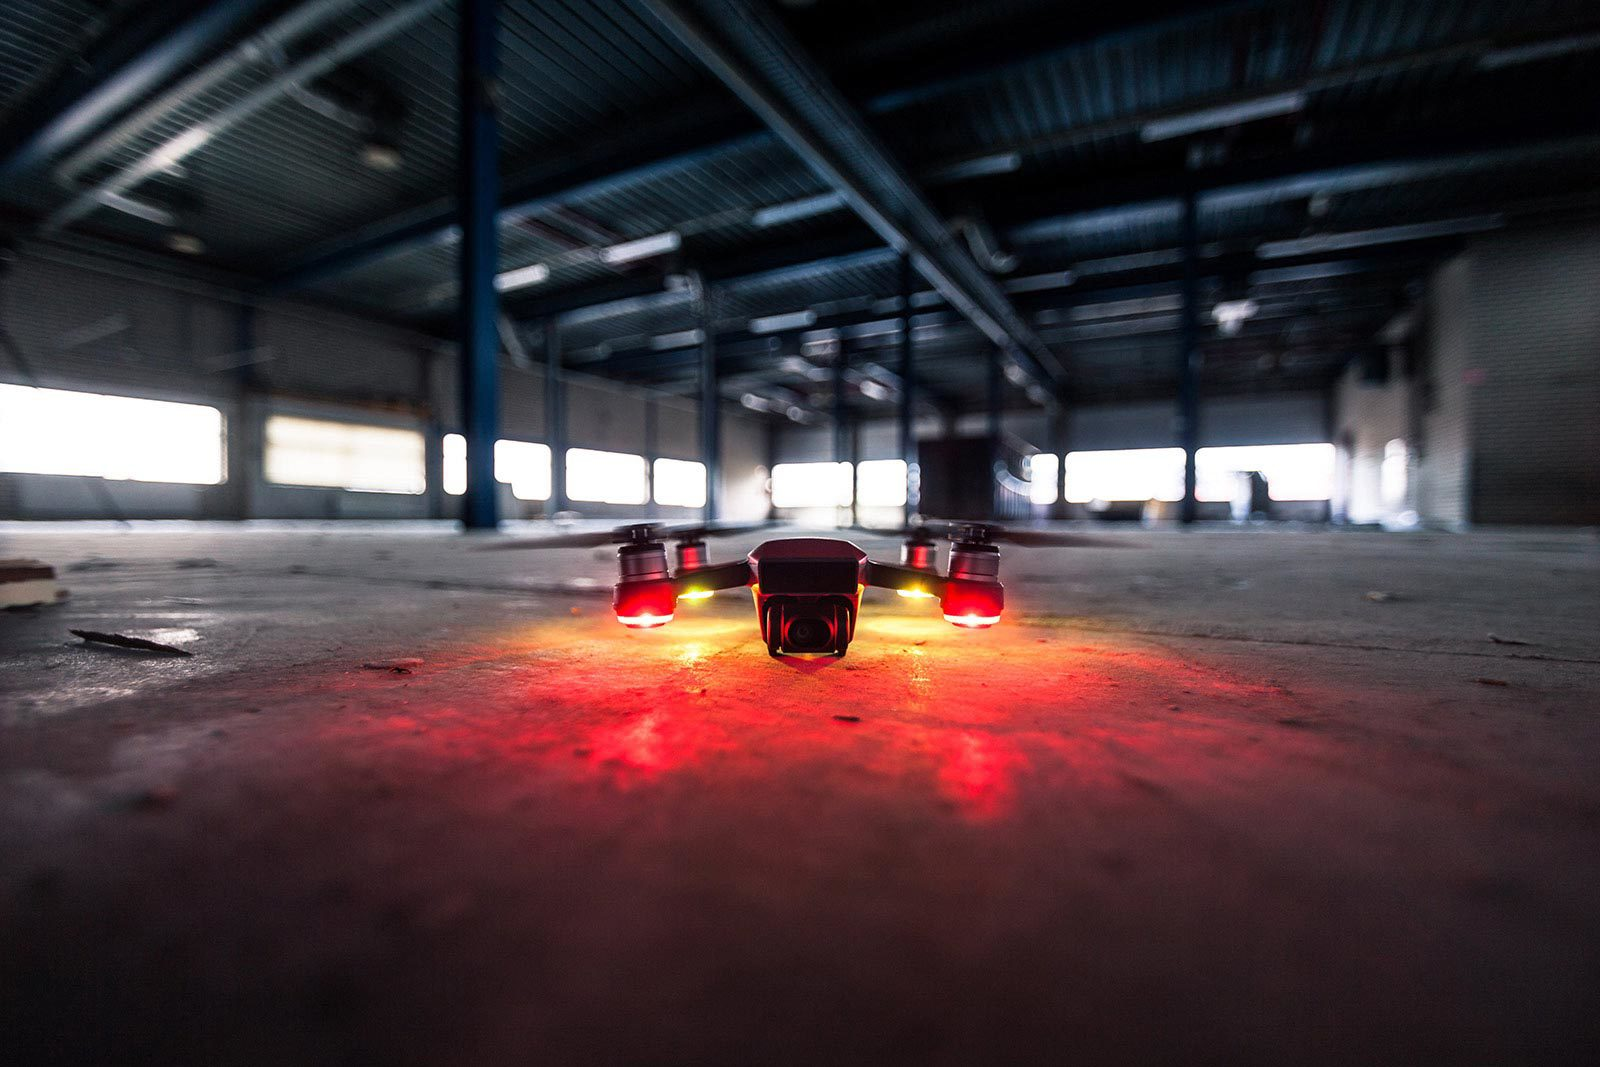 Red lighted drone sitting on cement ground in empty warehouse.